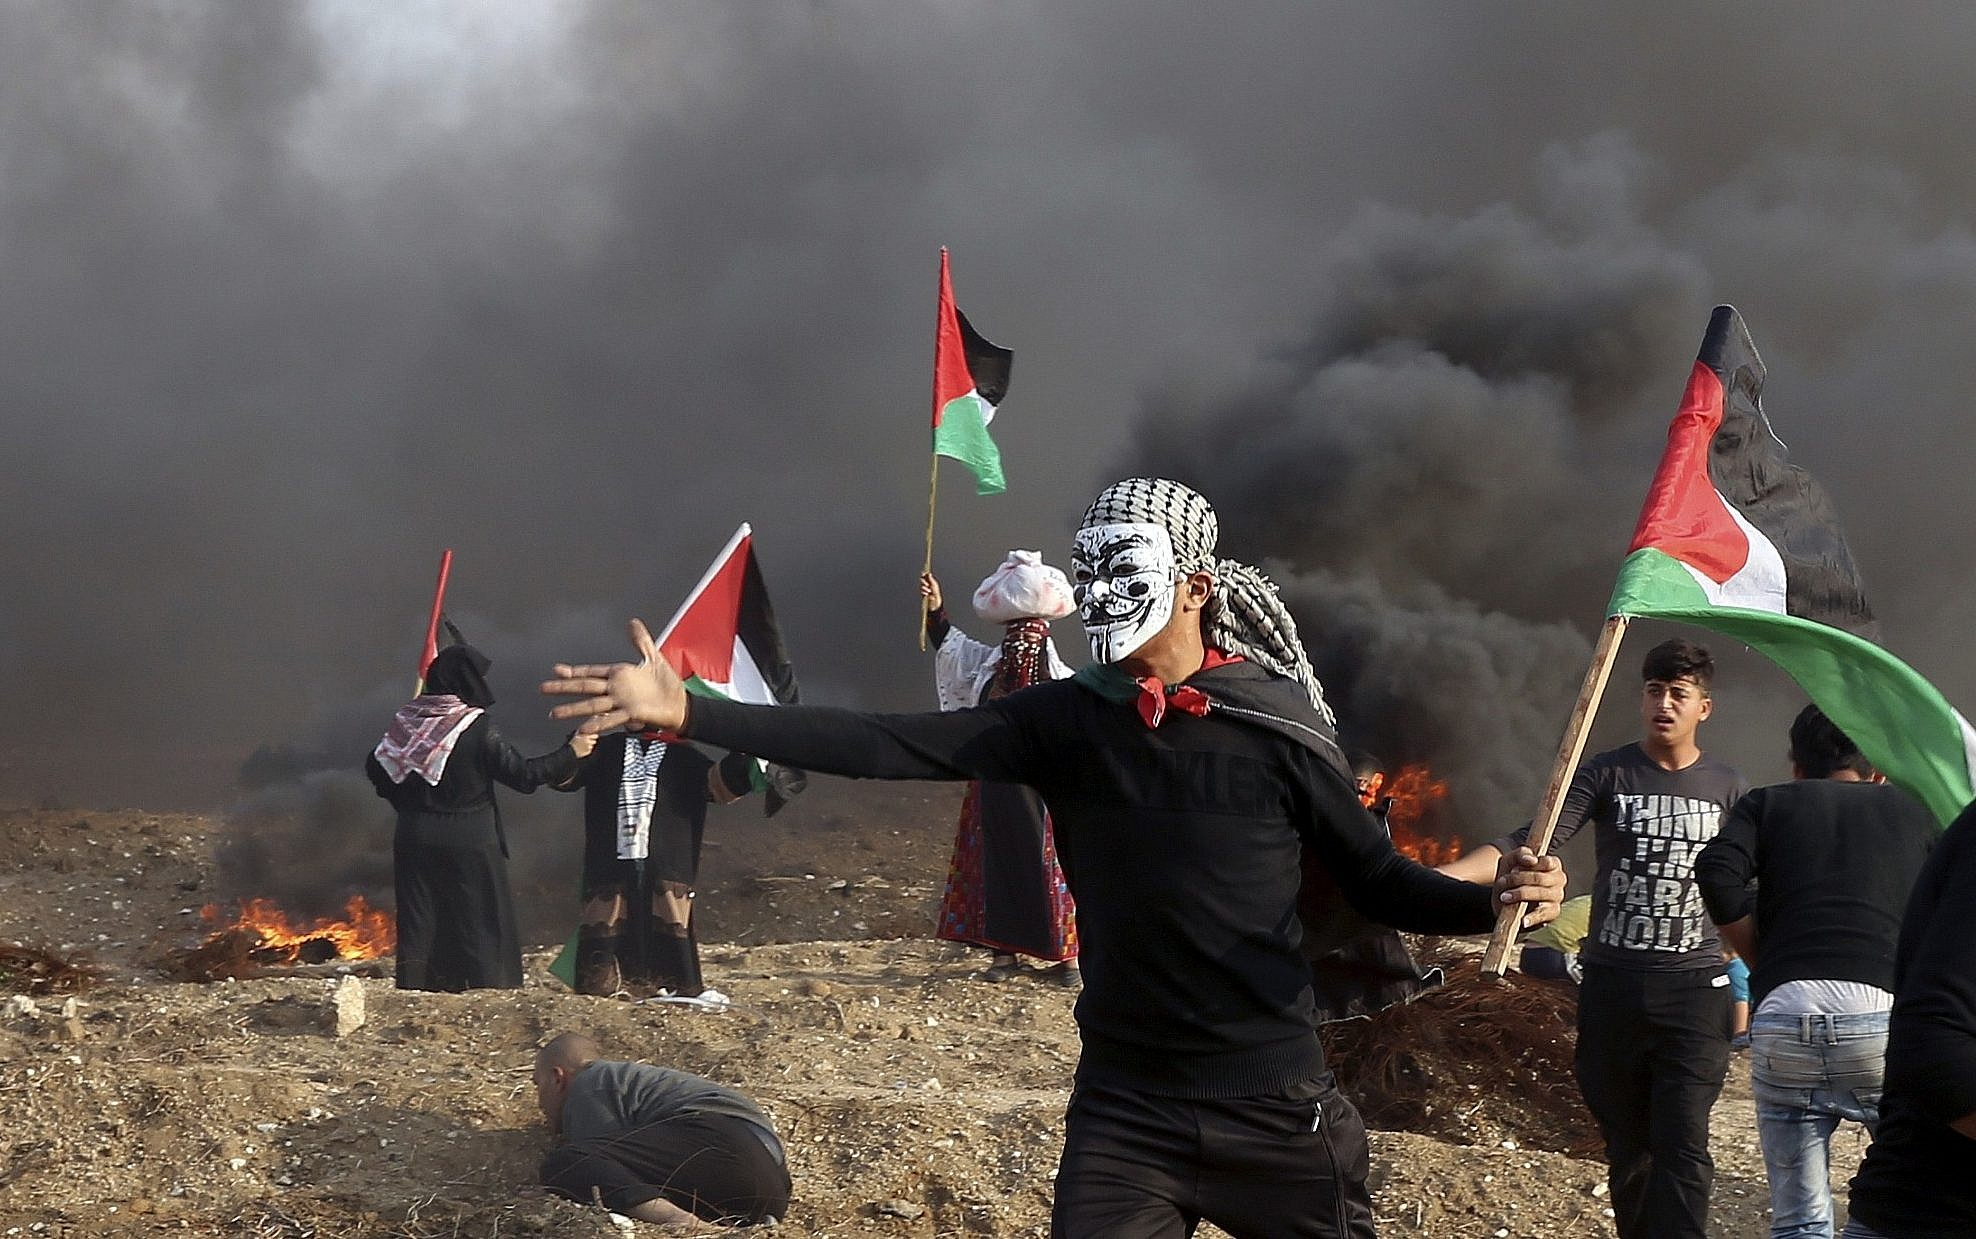 Palestinian officers will respond to annexation with violence